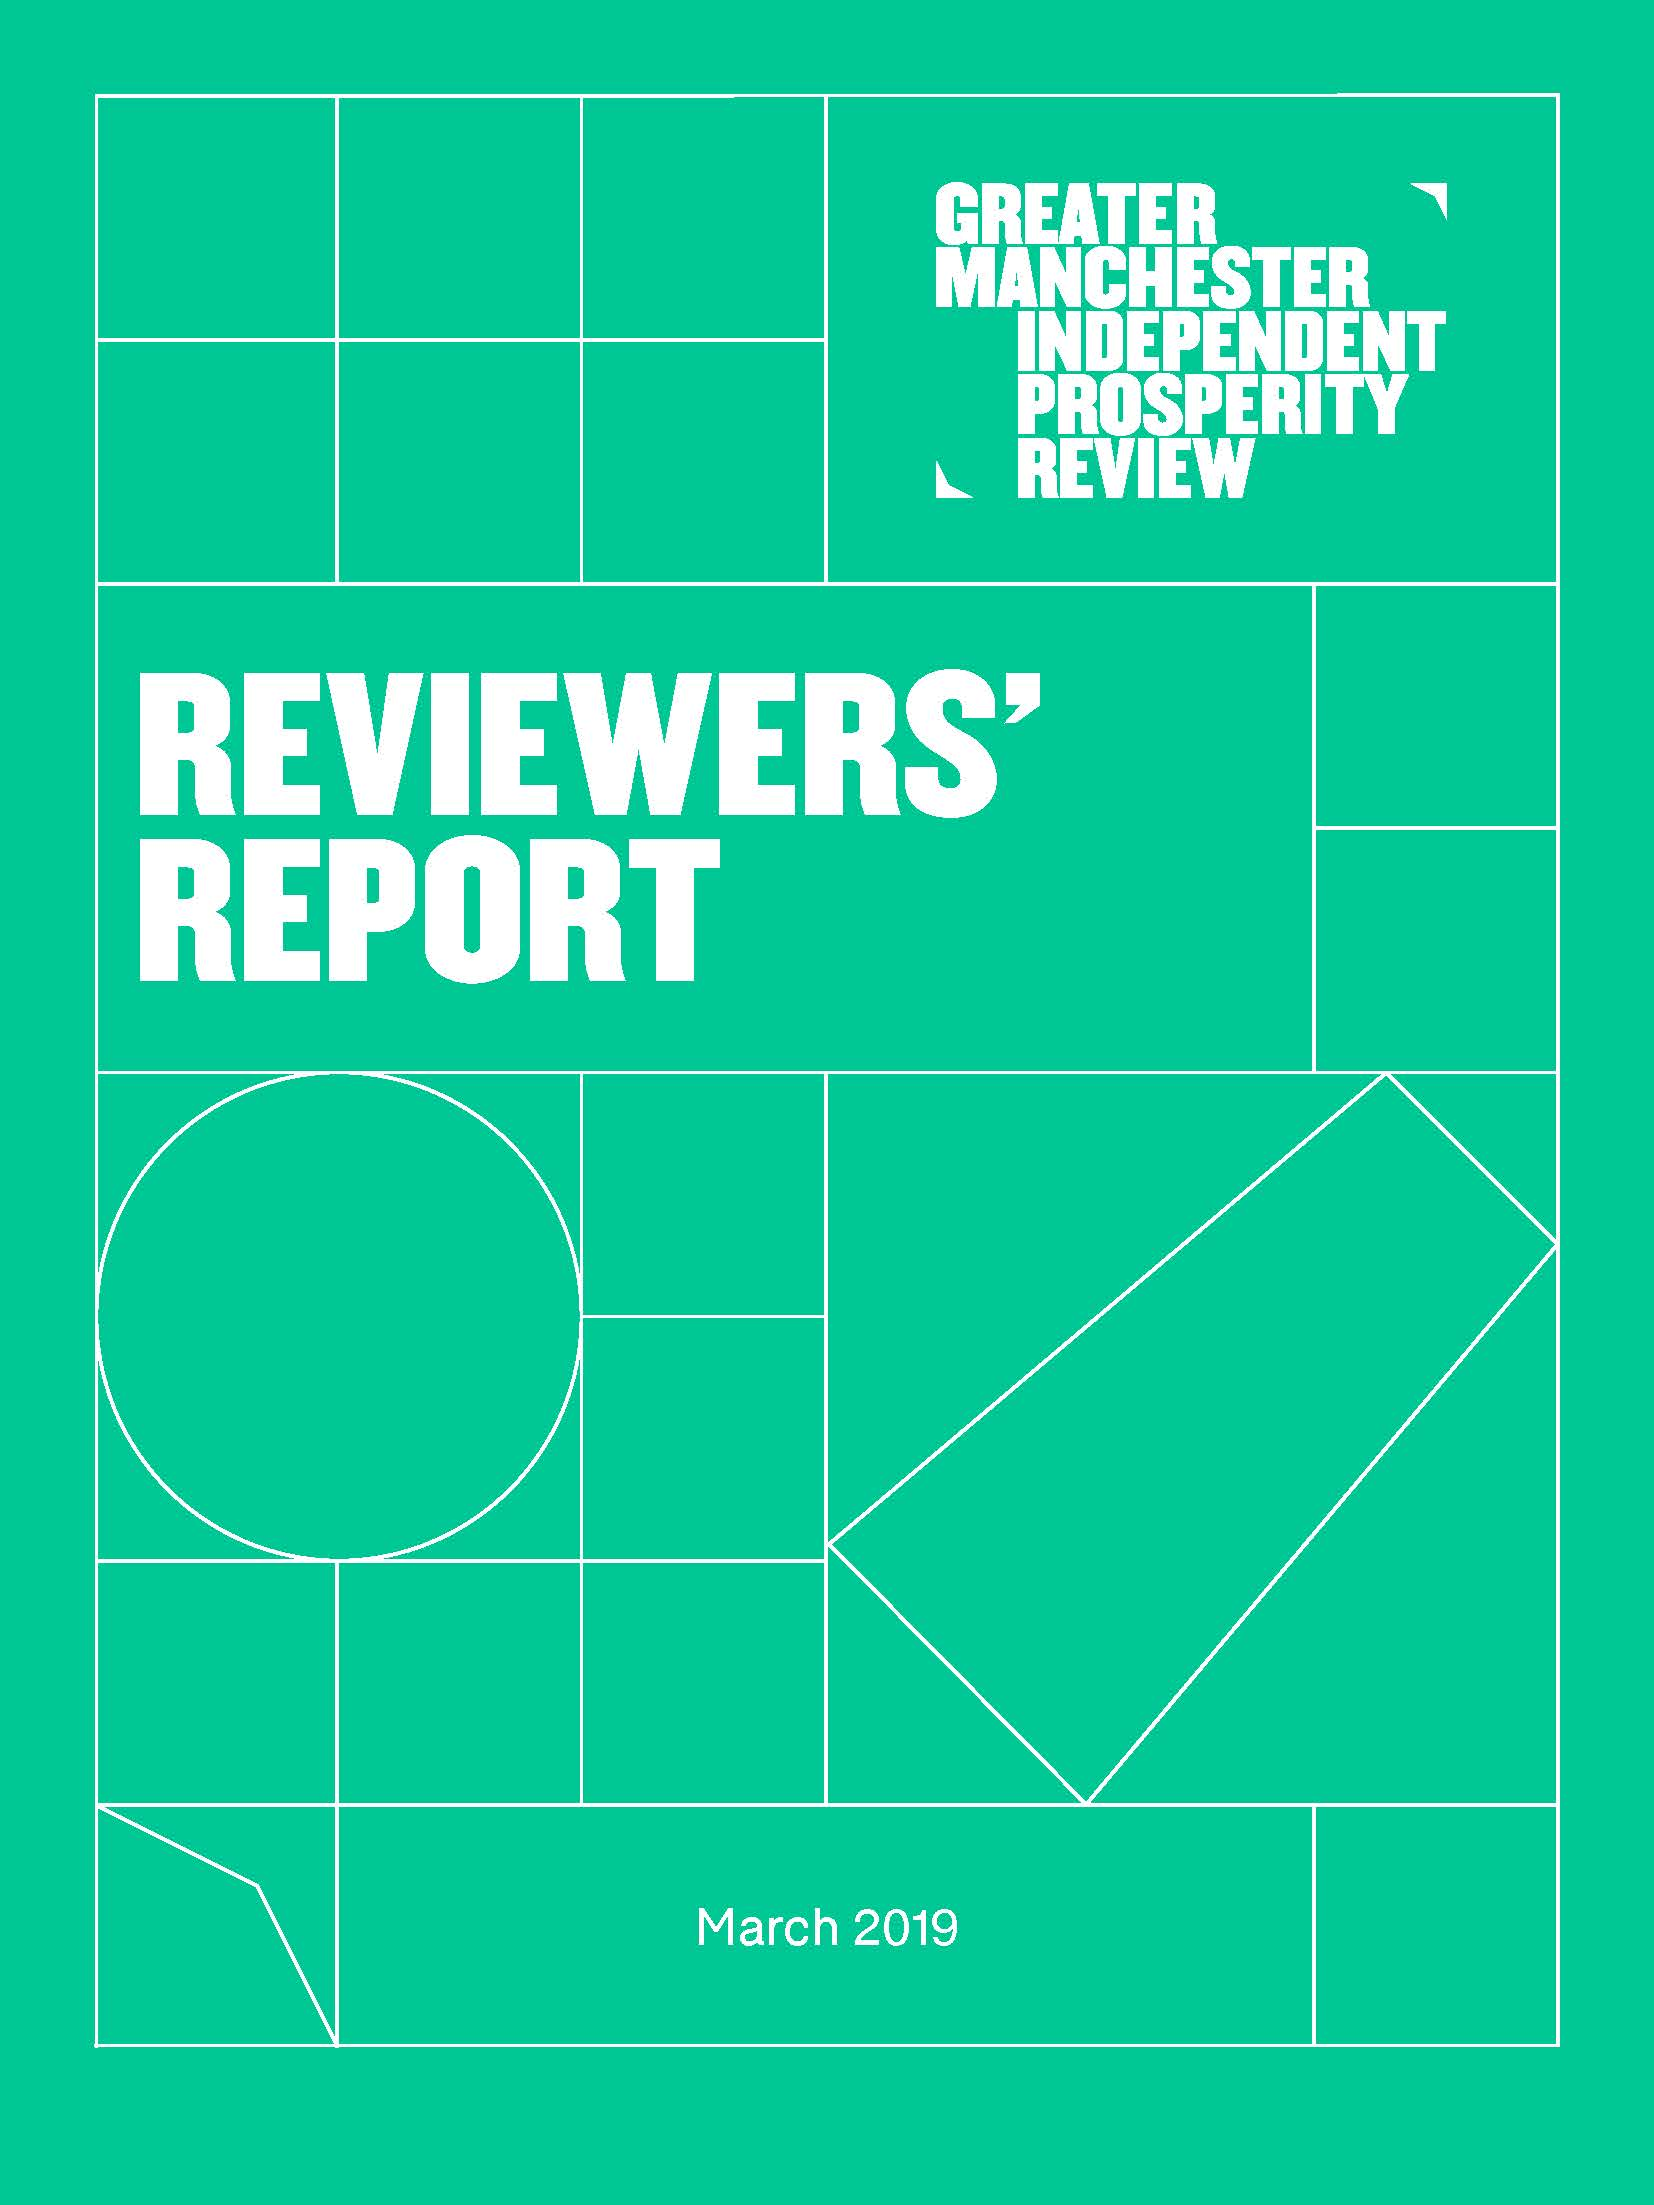 GMIS_ReviewersReport_08 COVER.jpg